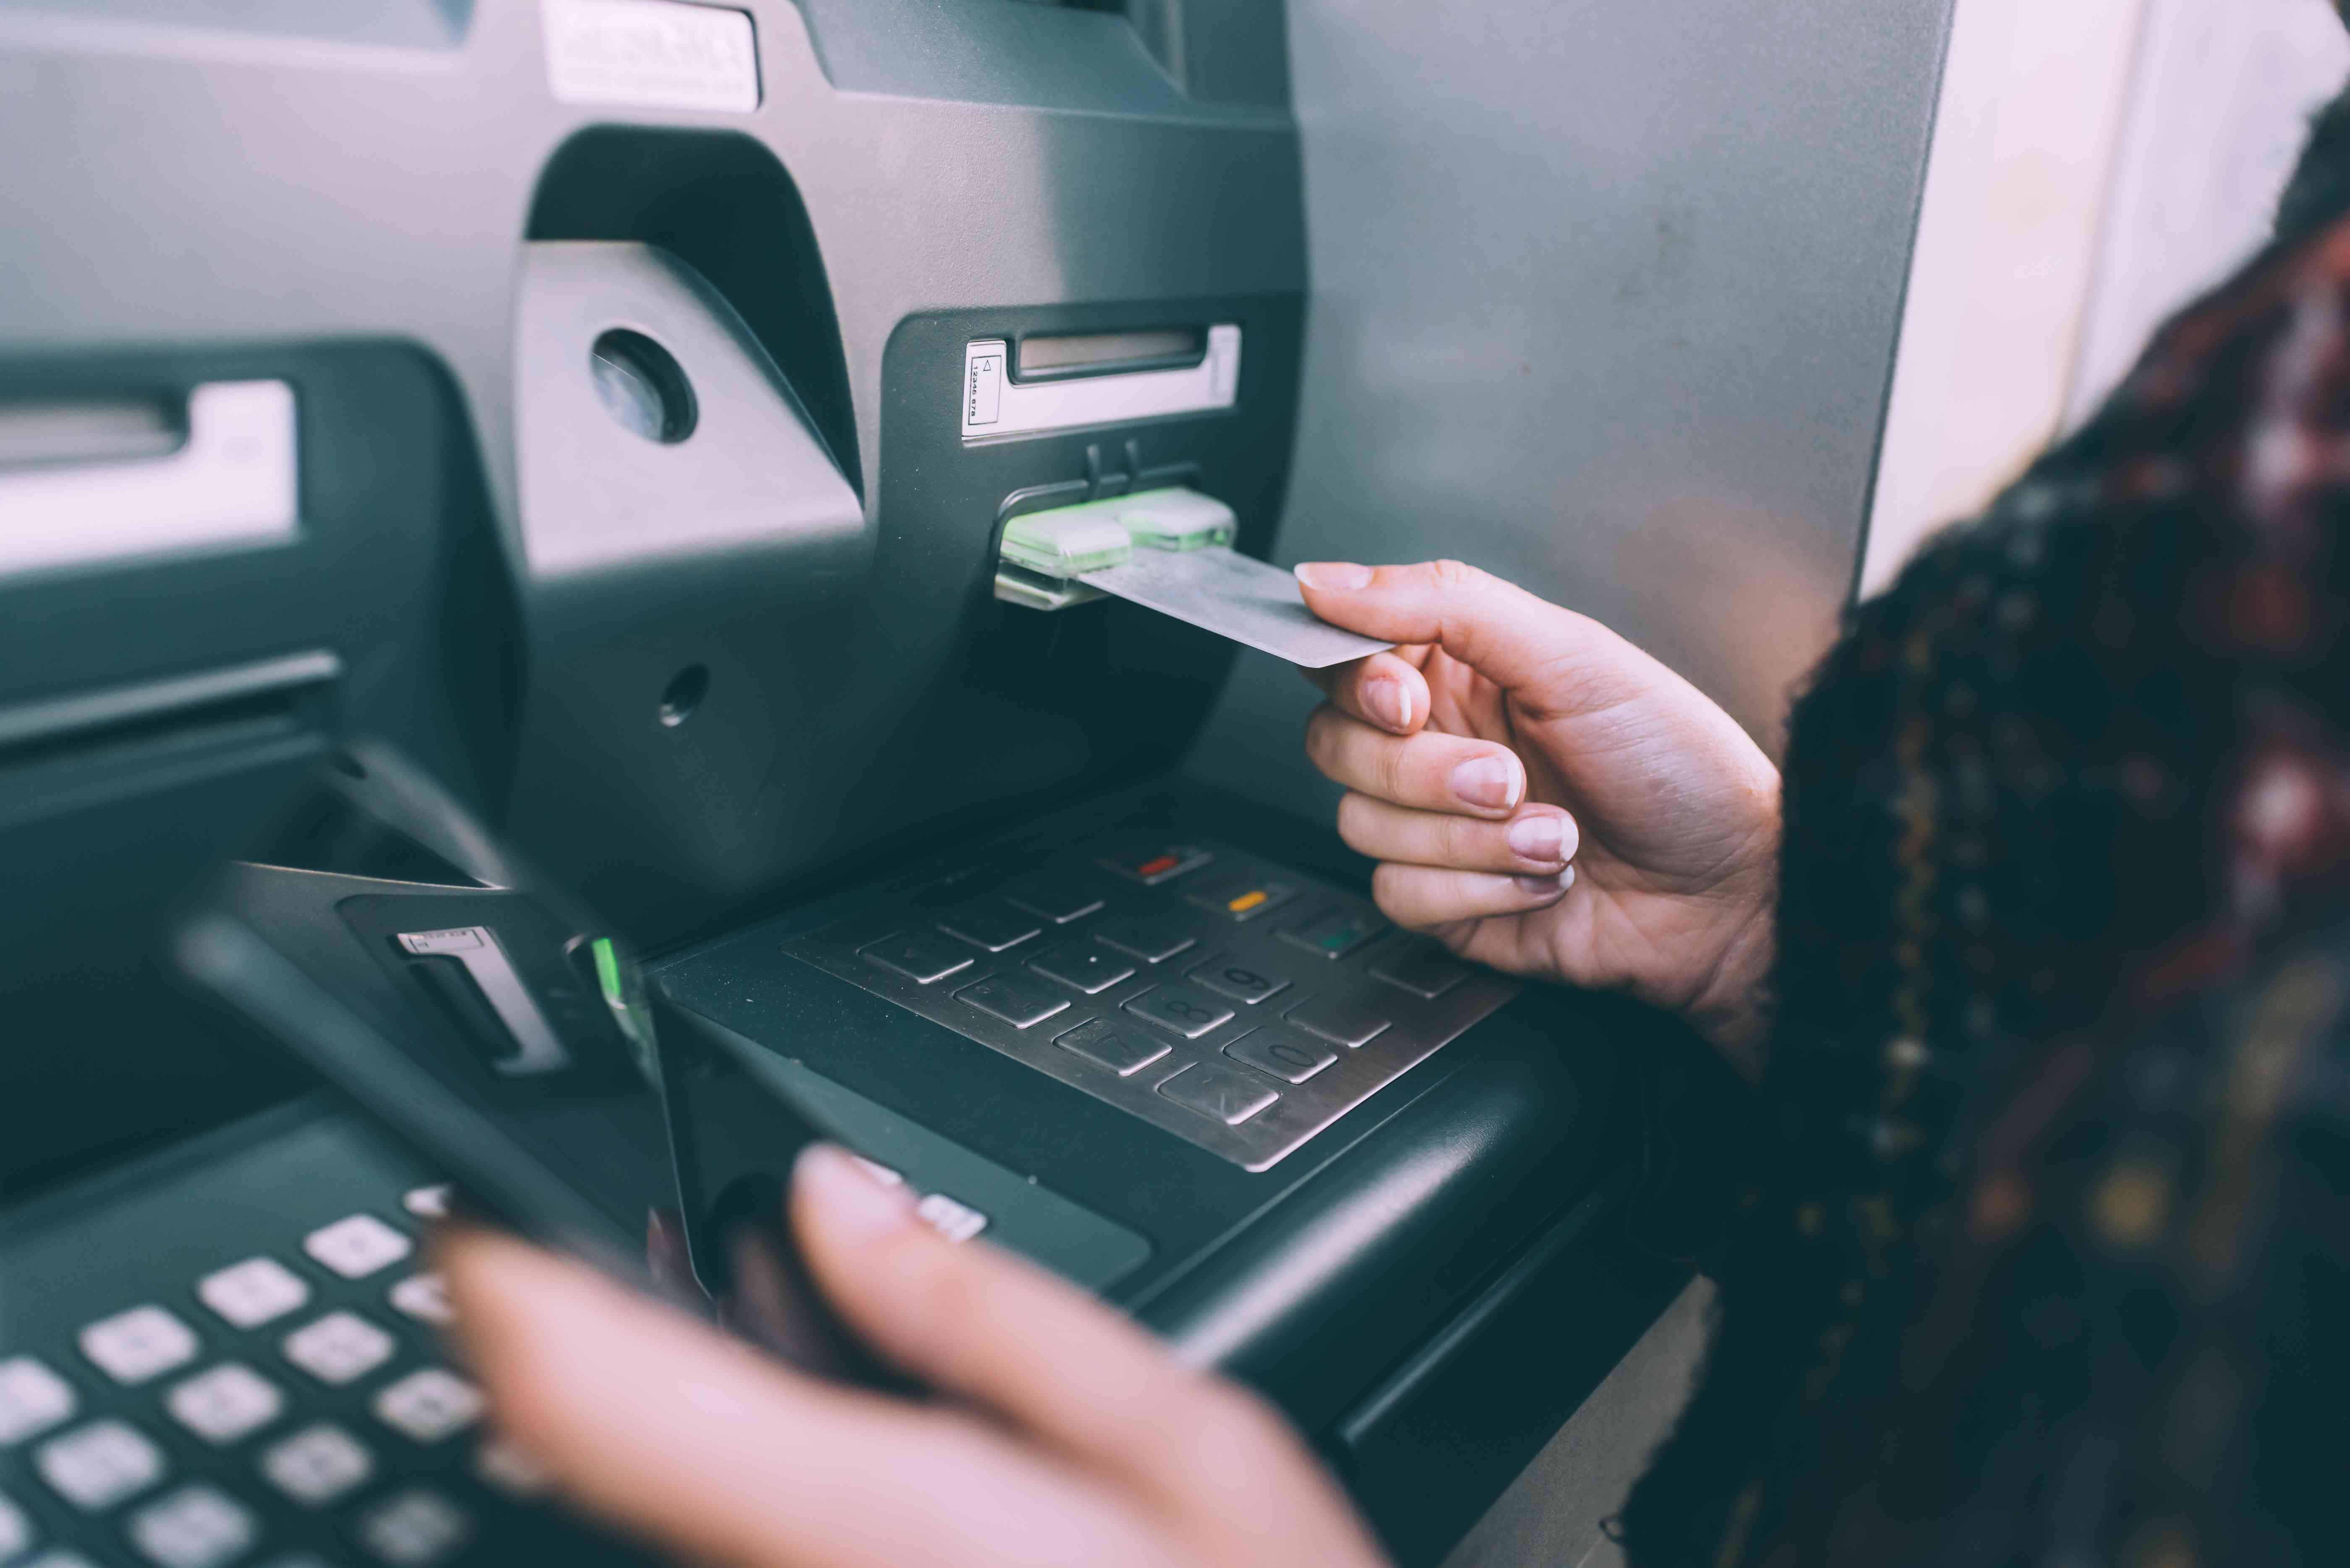 A woman using an ATM that will charge her account a fee